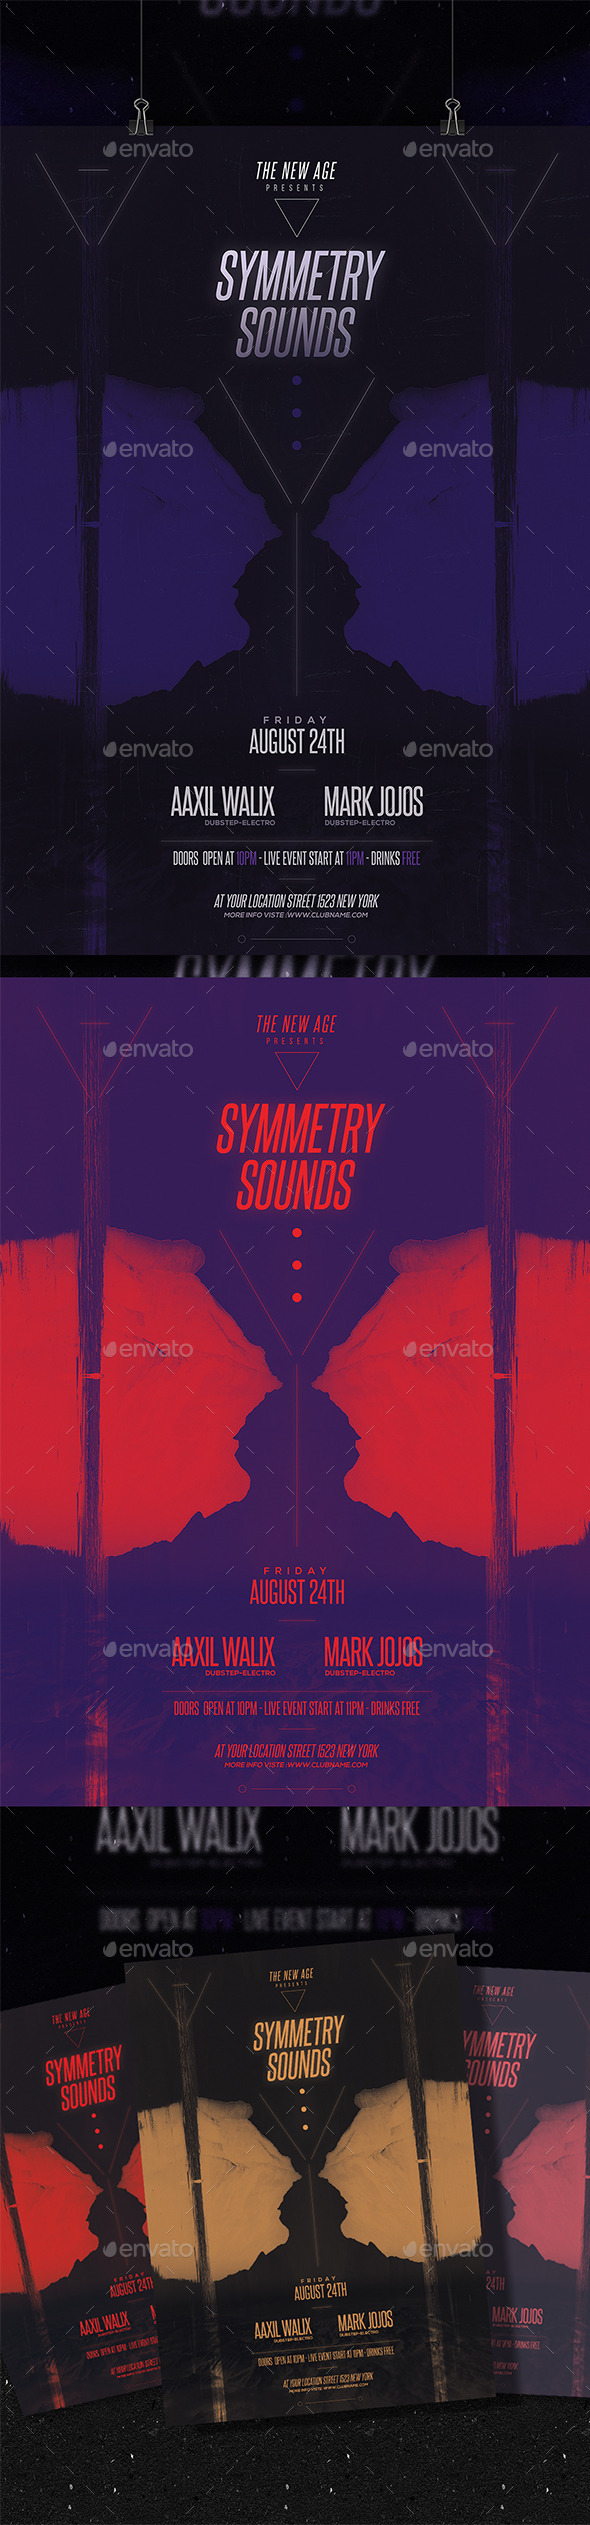 Minimal Flyer/Poster - Symmetry Sounds - Clubs & Parties Events